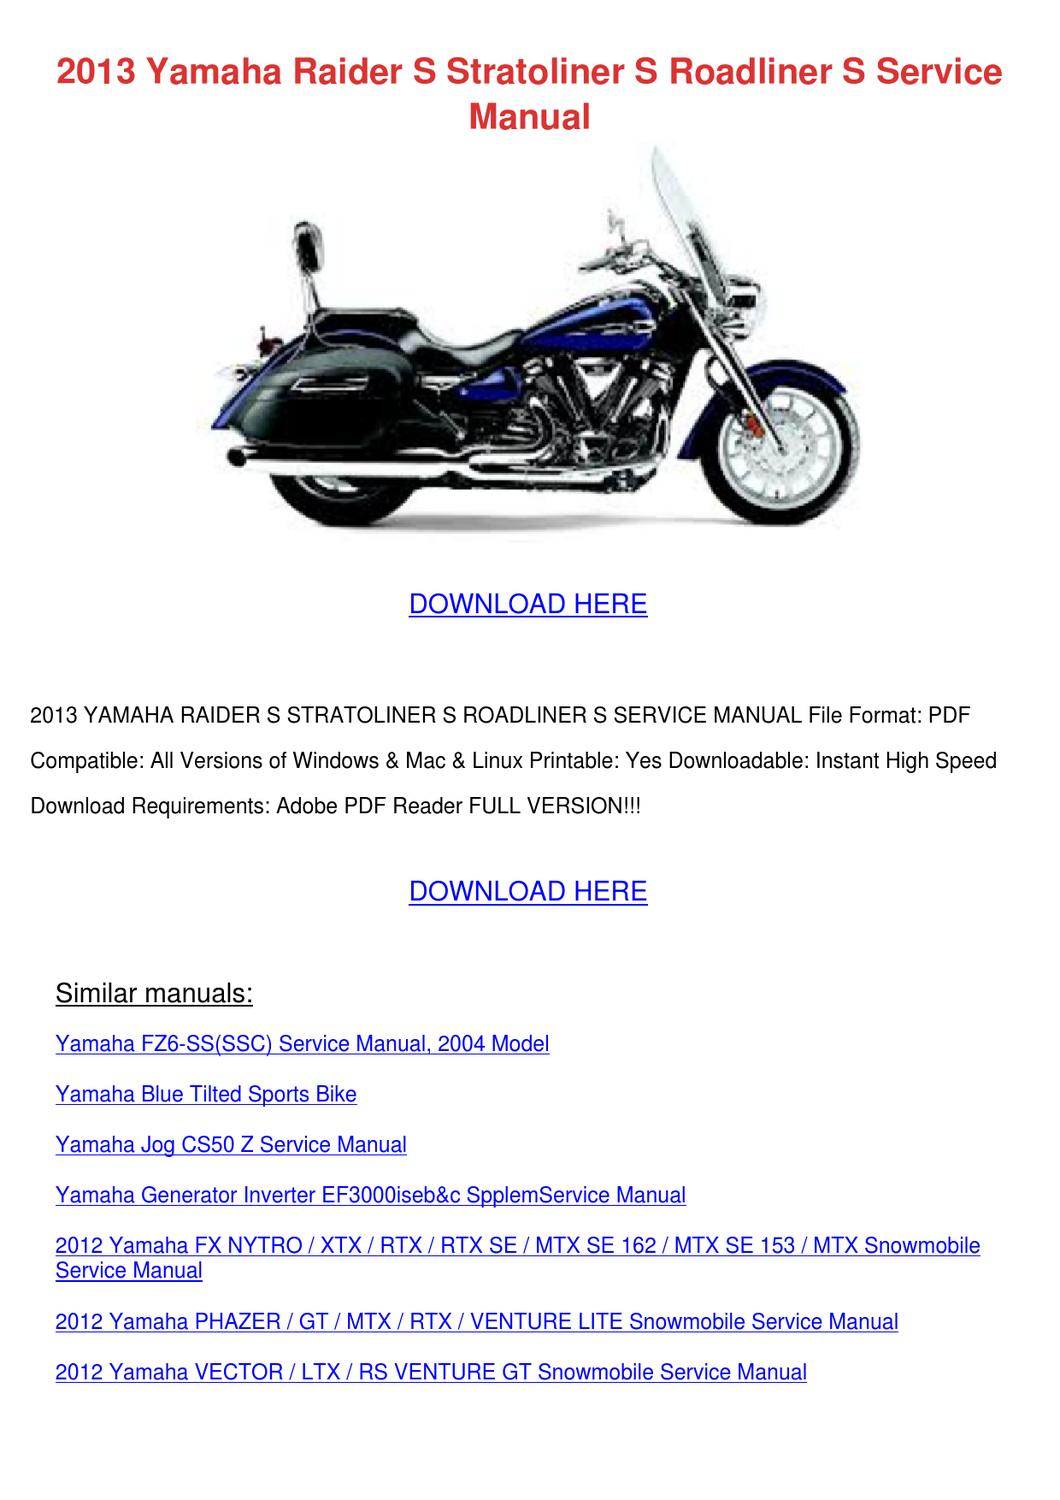 yamaha roadliner roadliner service manual xv19sw manuals yamaha roadliner  yamaha  roadliner xv19sw owner s manual pdf download